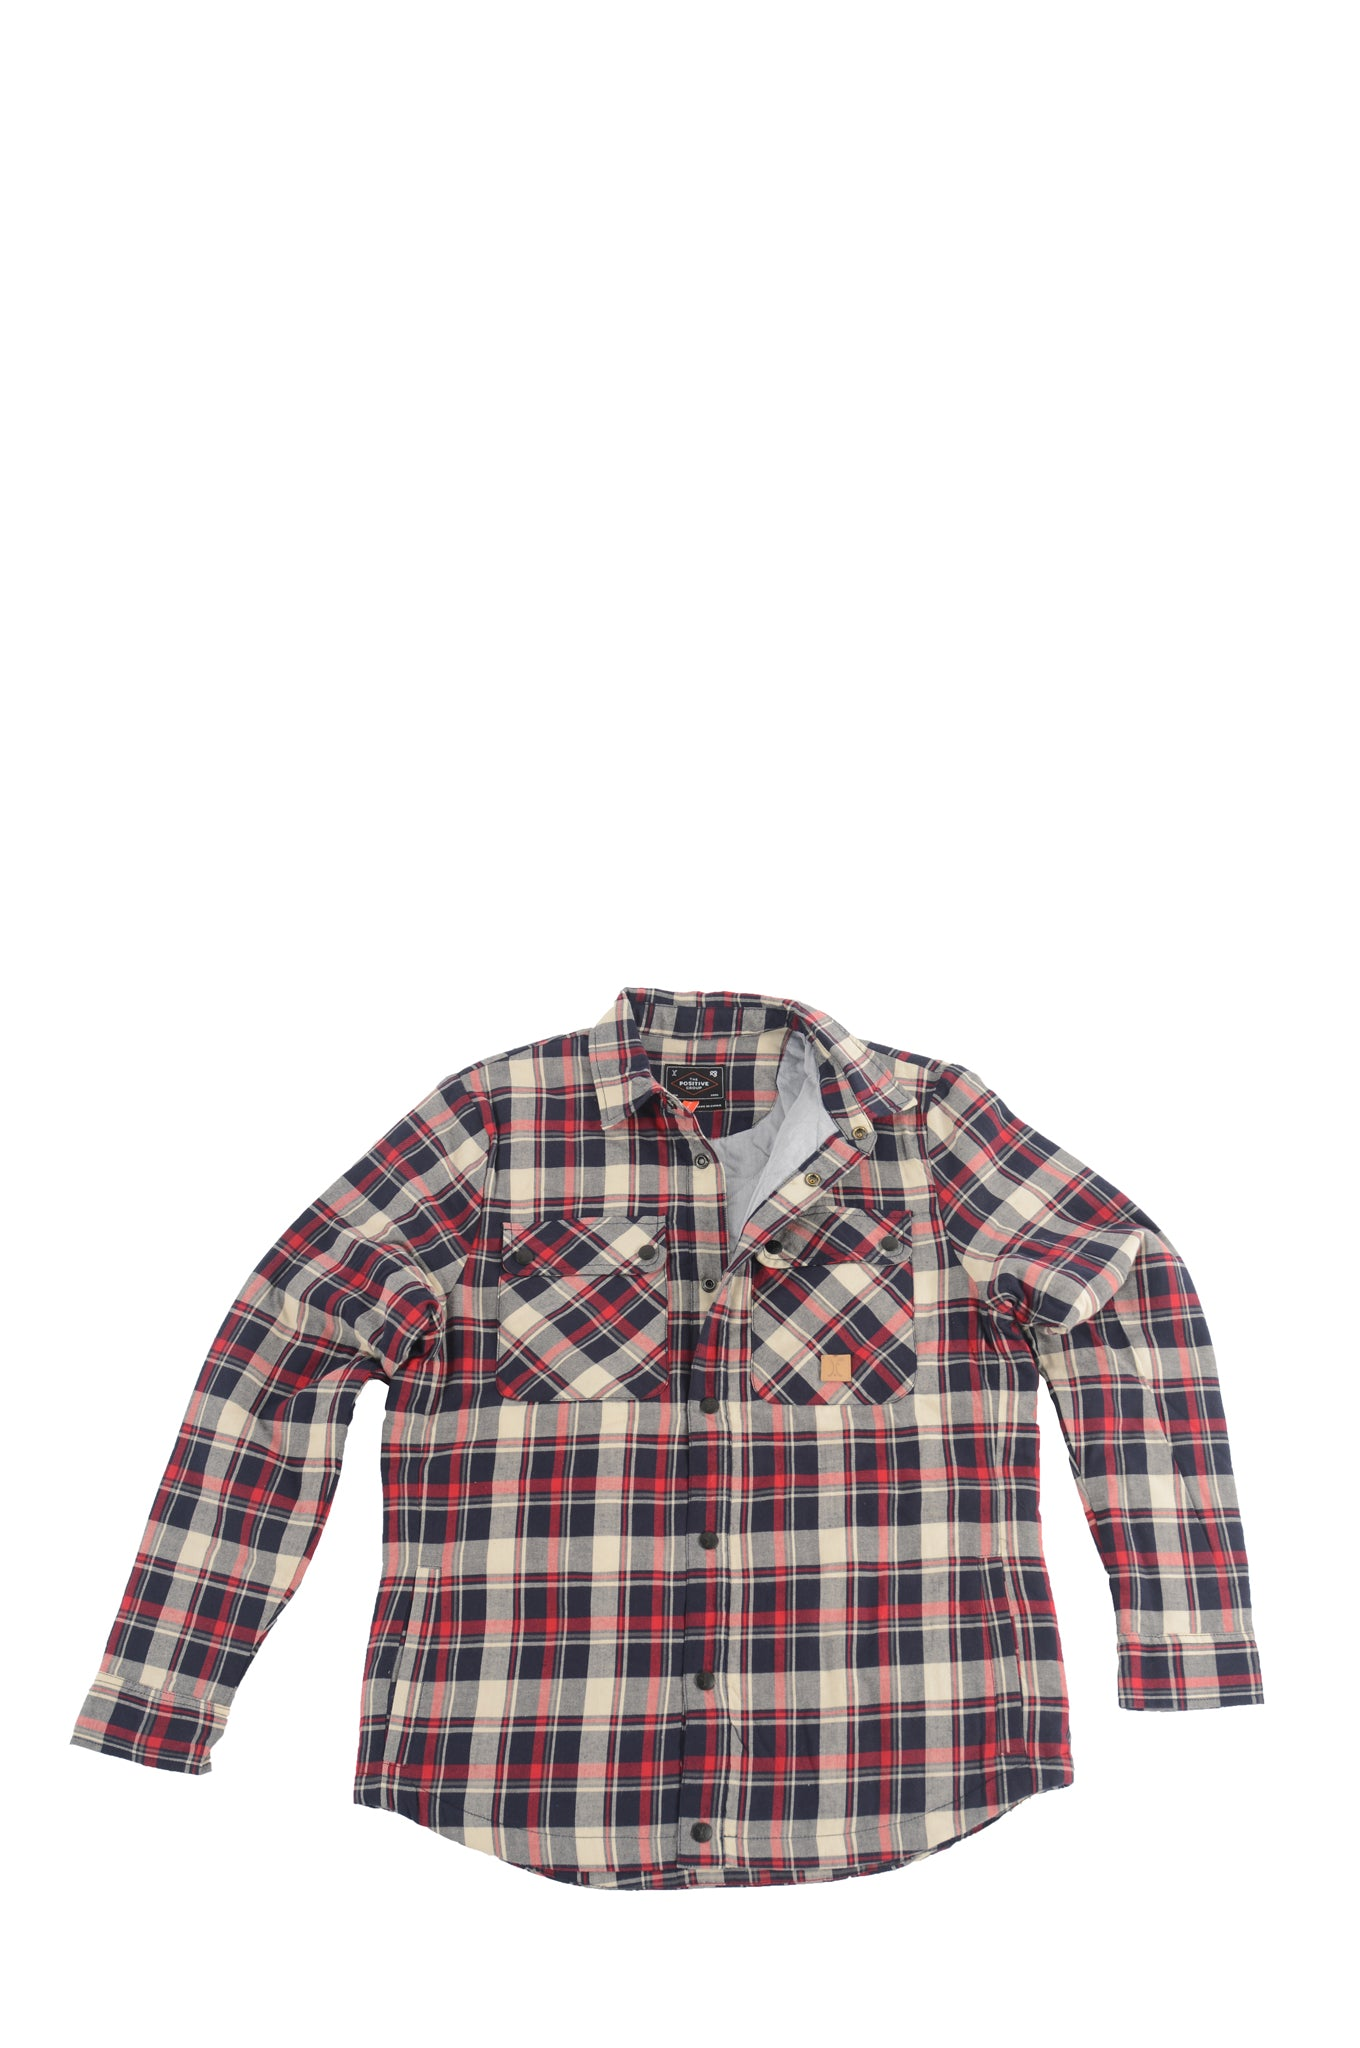 MAPLE CREEK SHIRT - MADRAS PLAID, Positive Group,